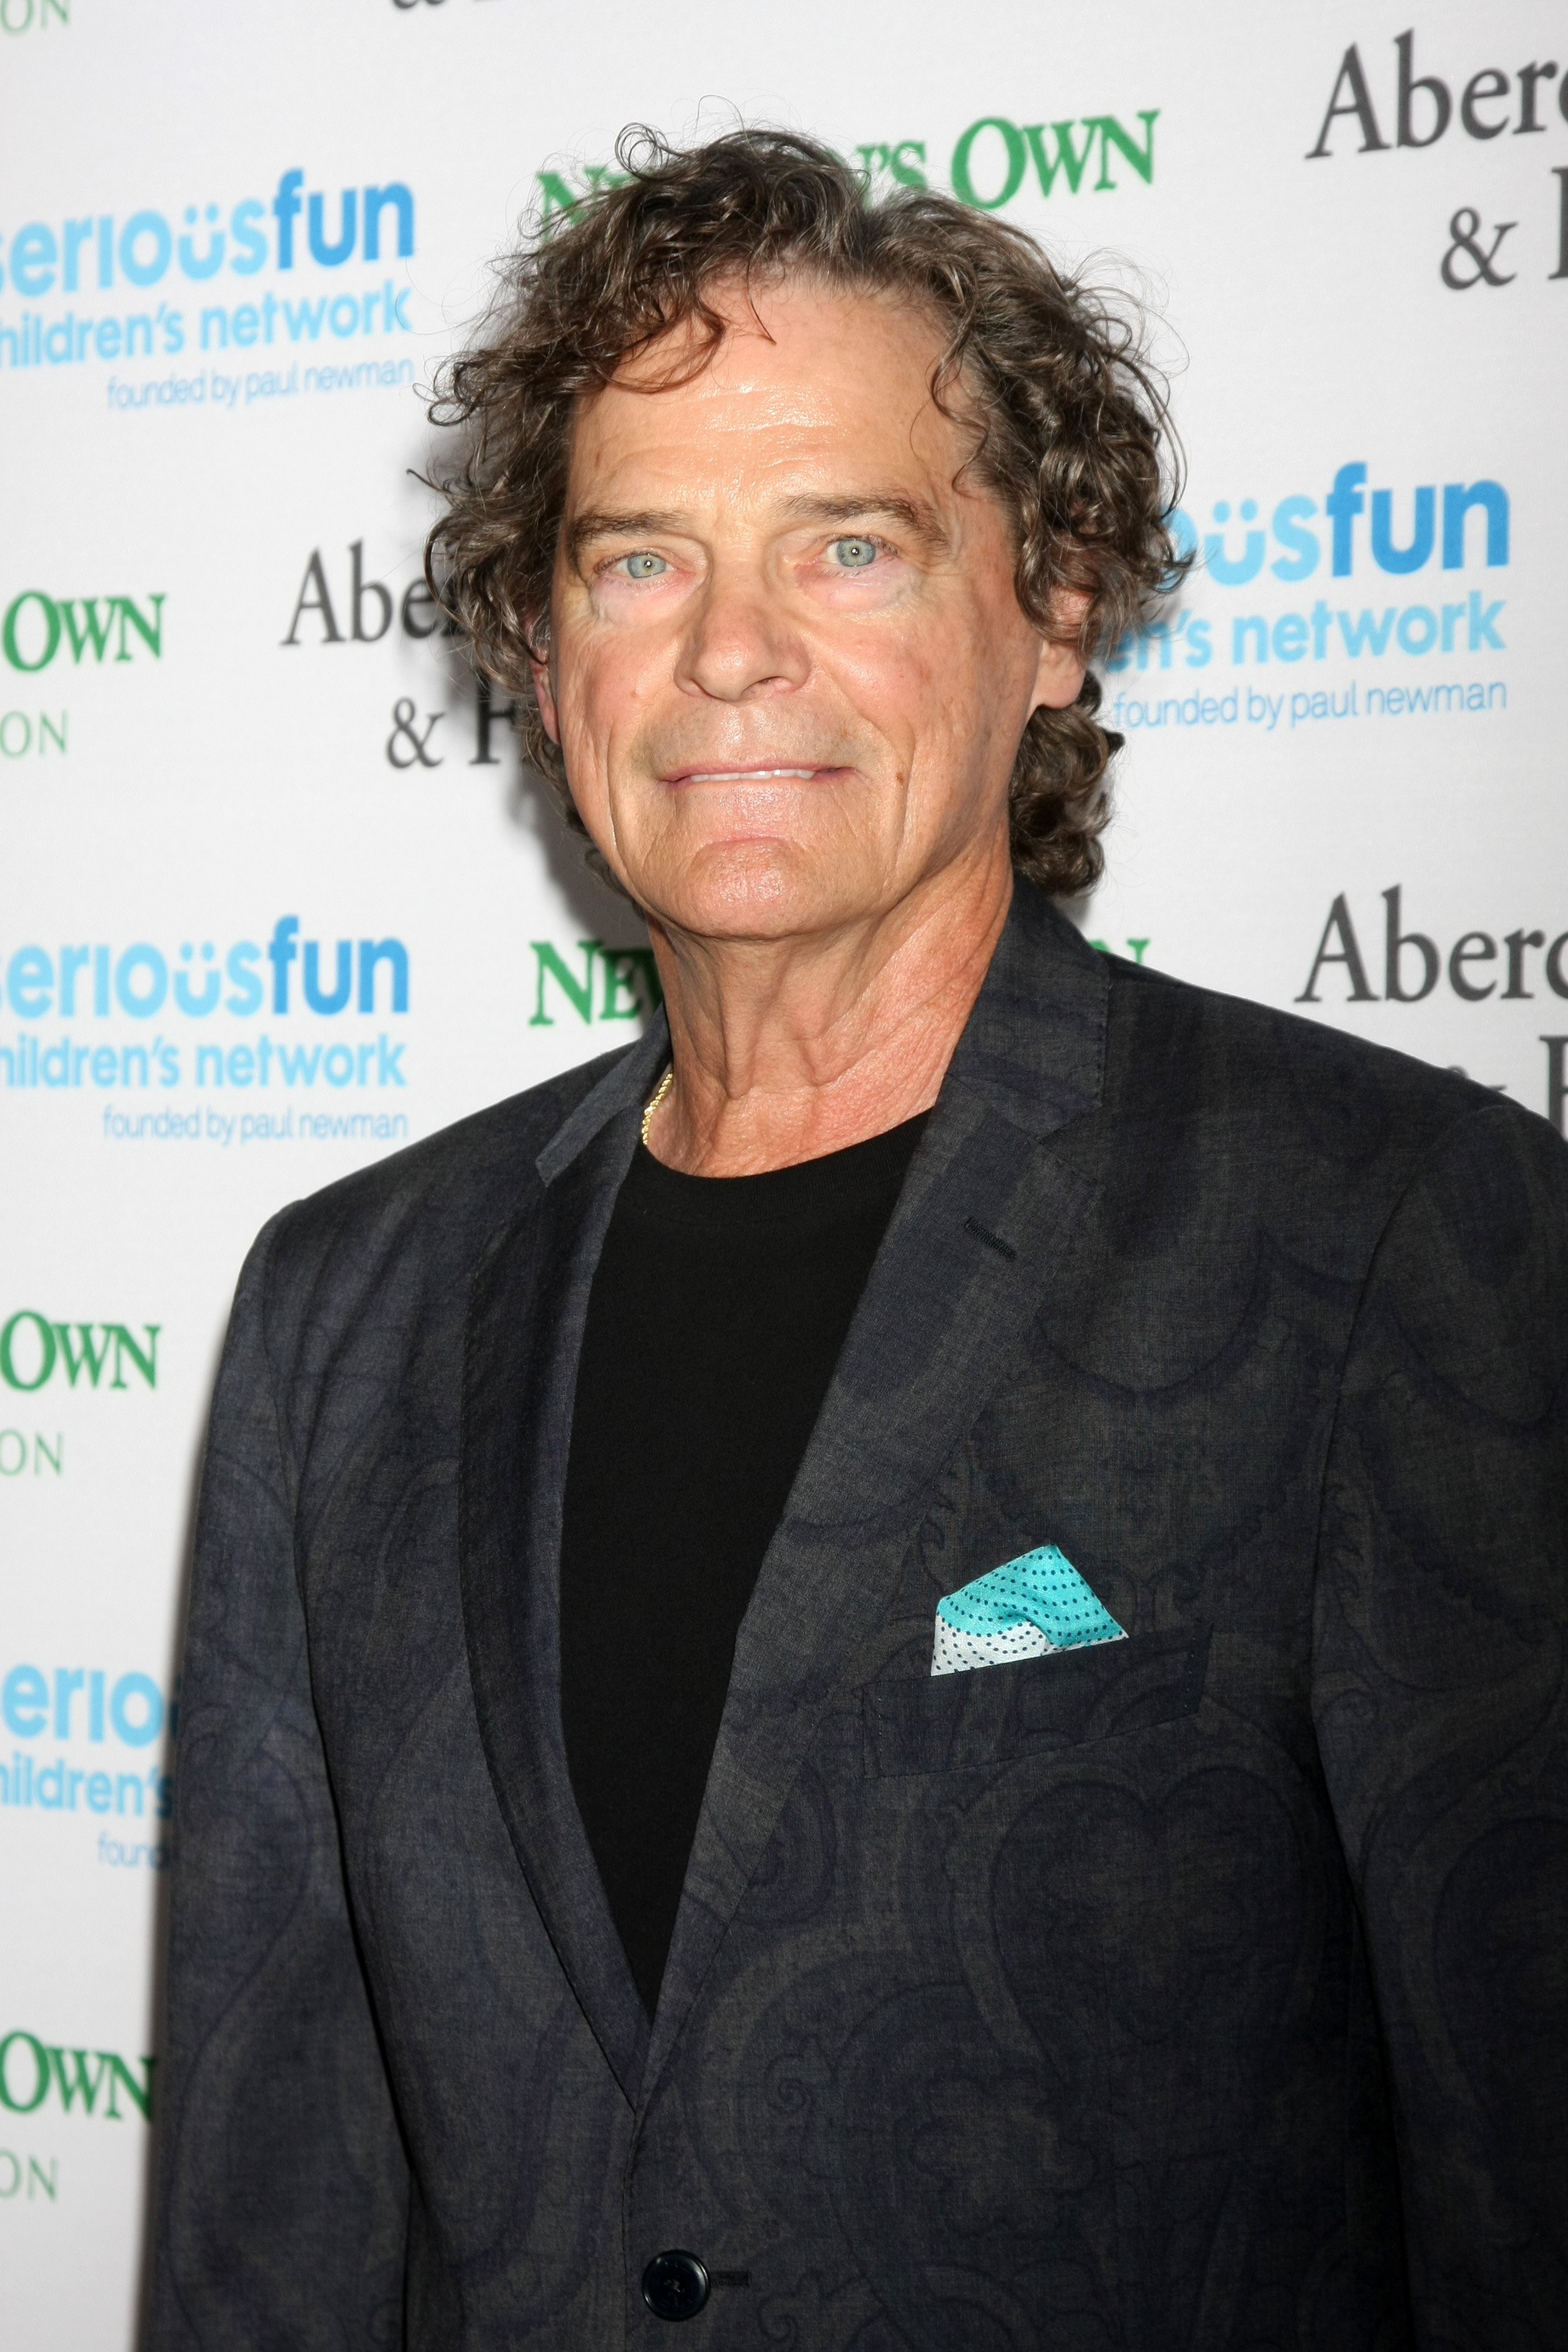 BJ Thomas at the SeriousFun Children's Network 2015 LA Gala at the Dolby Theater on May 14, 2015 in Los Angeles, CA | Photo: Shutterstock